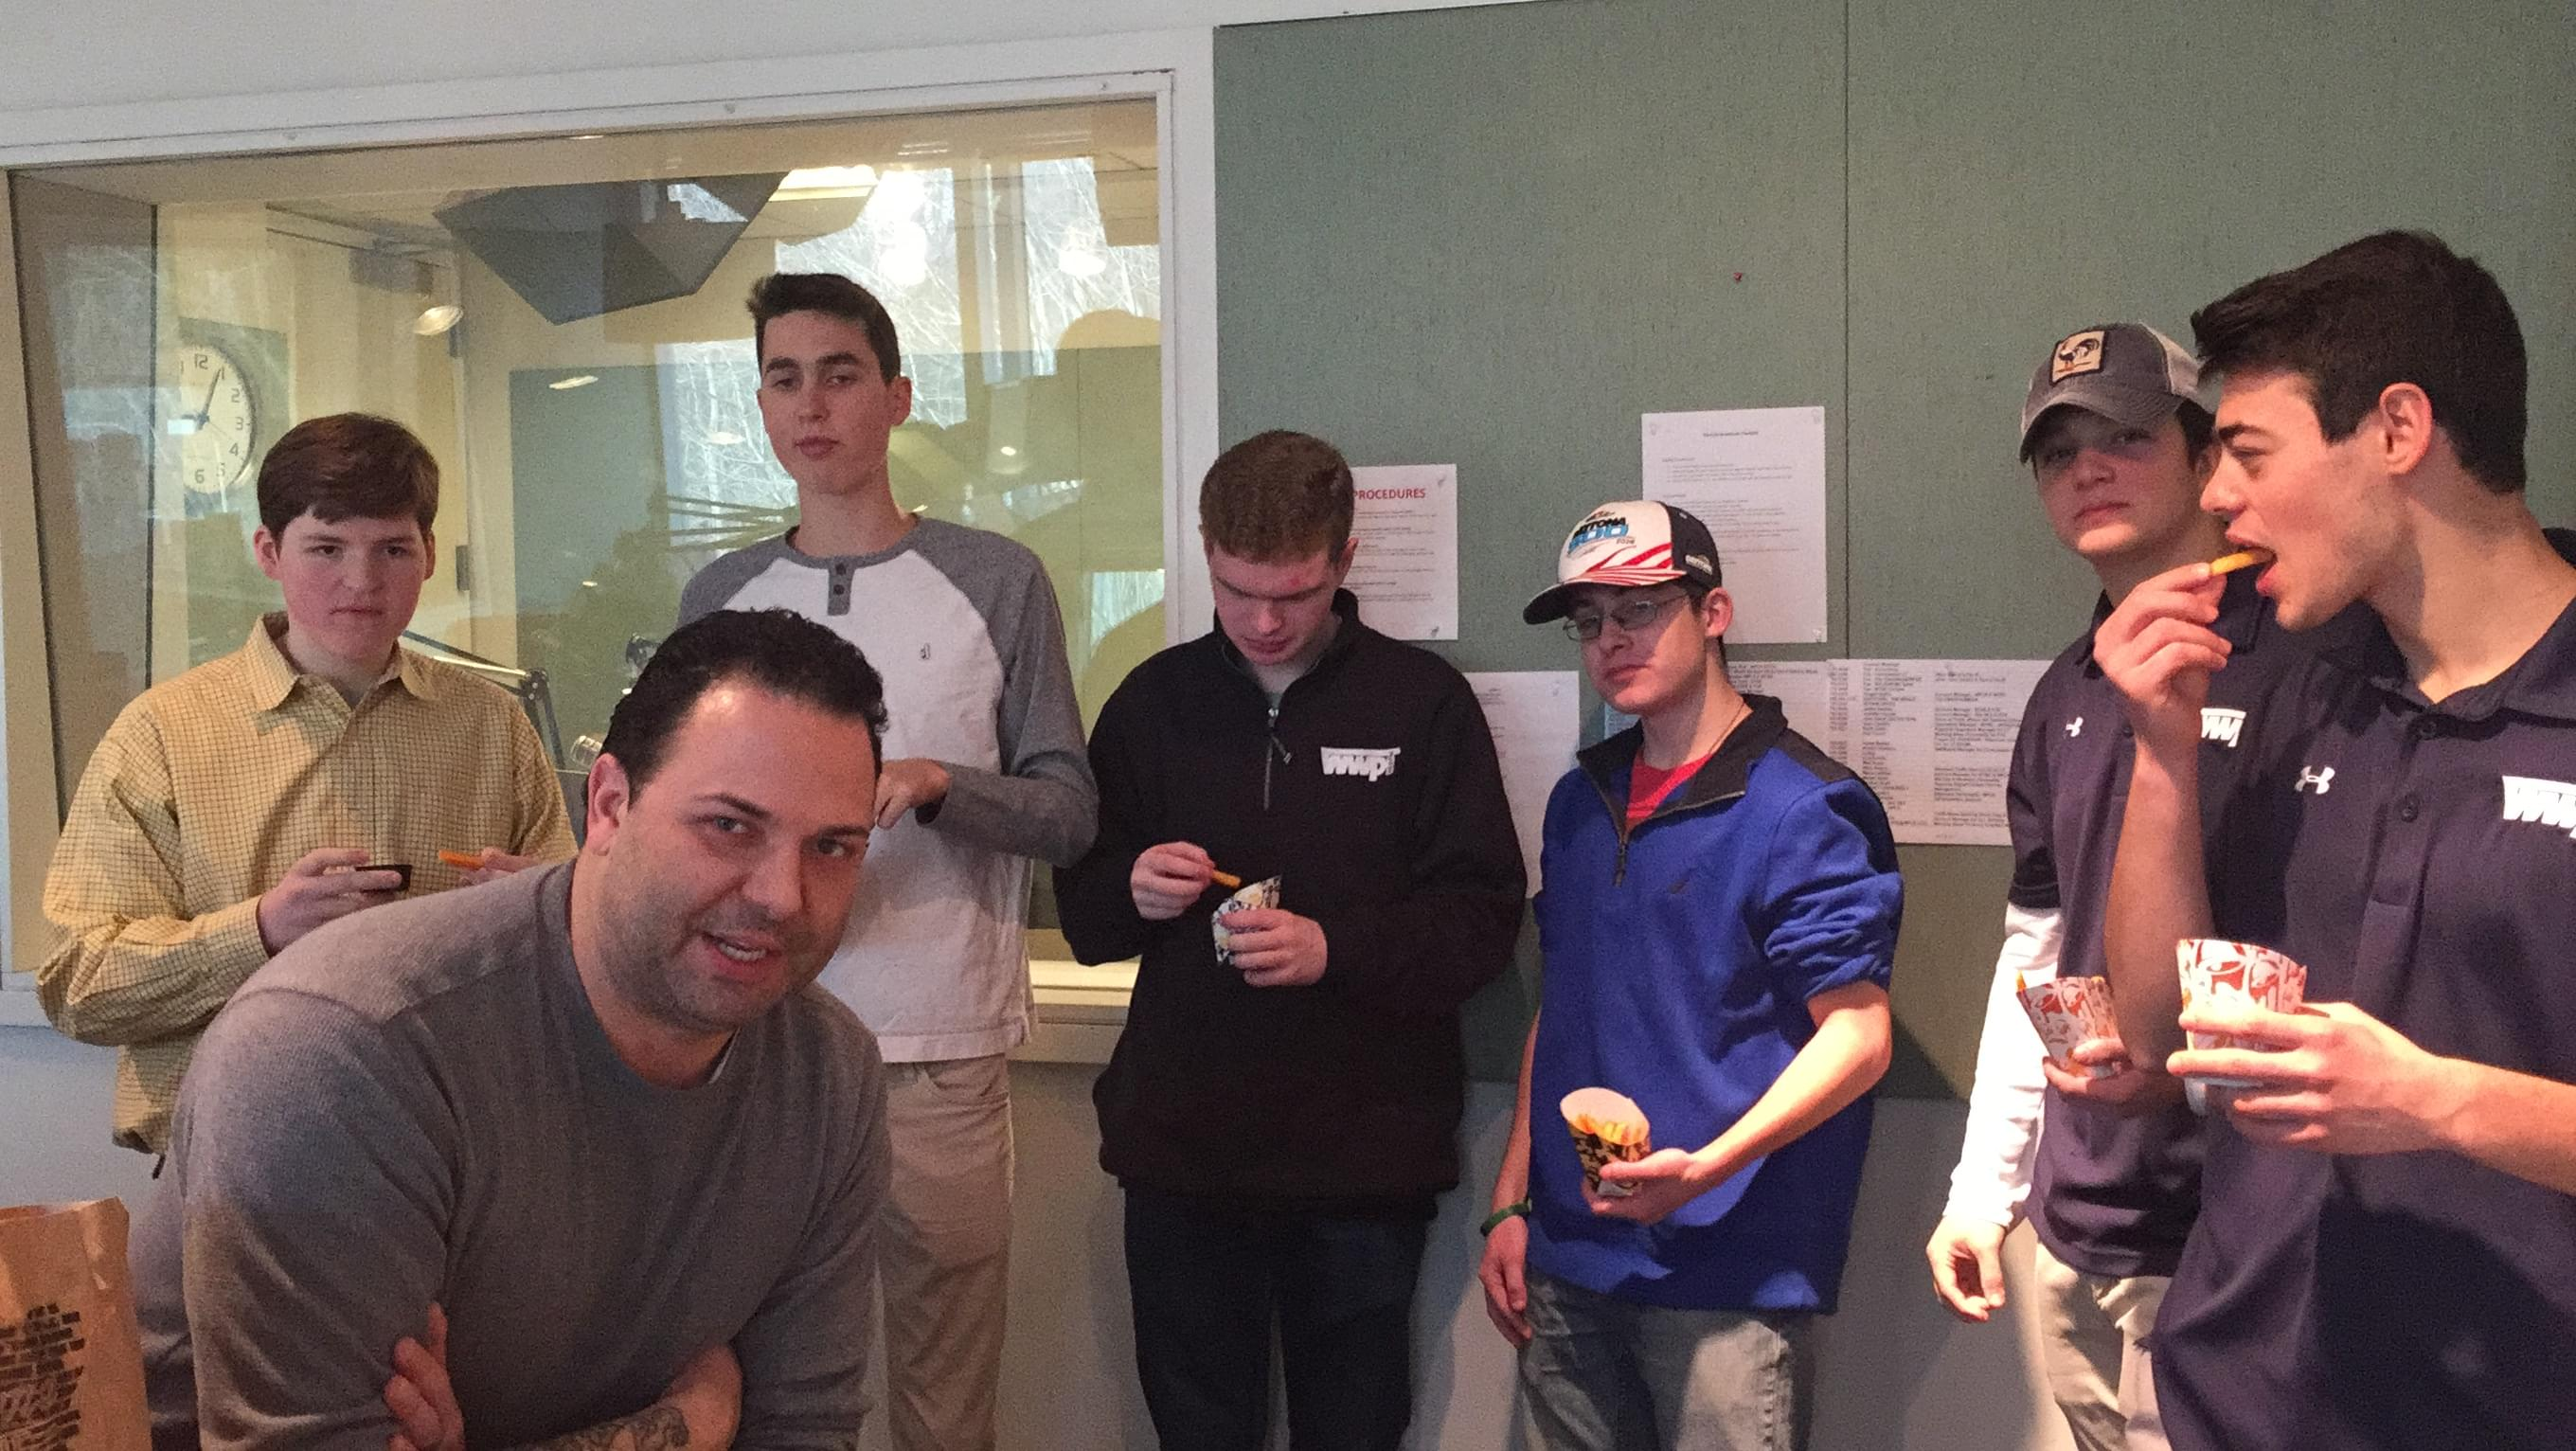 60 Seconds Behind the Scenes- The best high school radio station in the country and french fries!